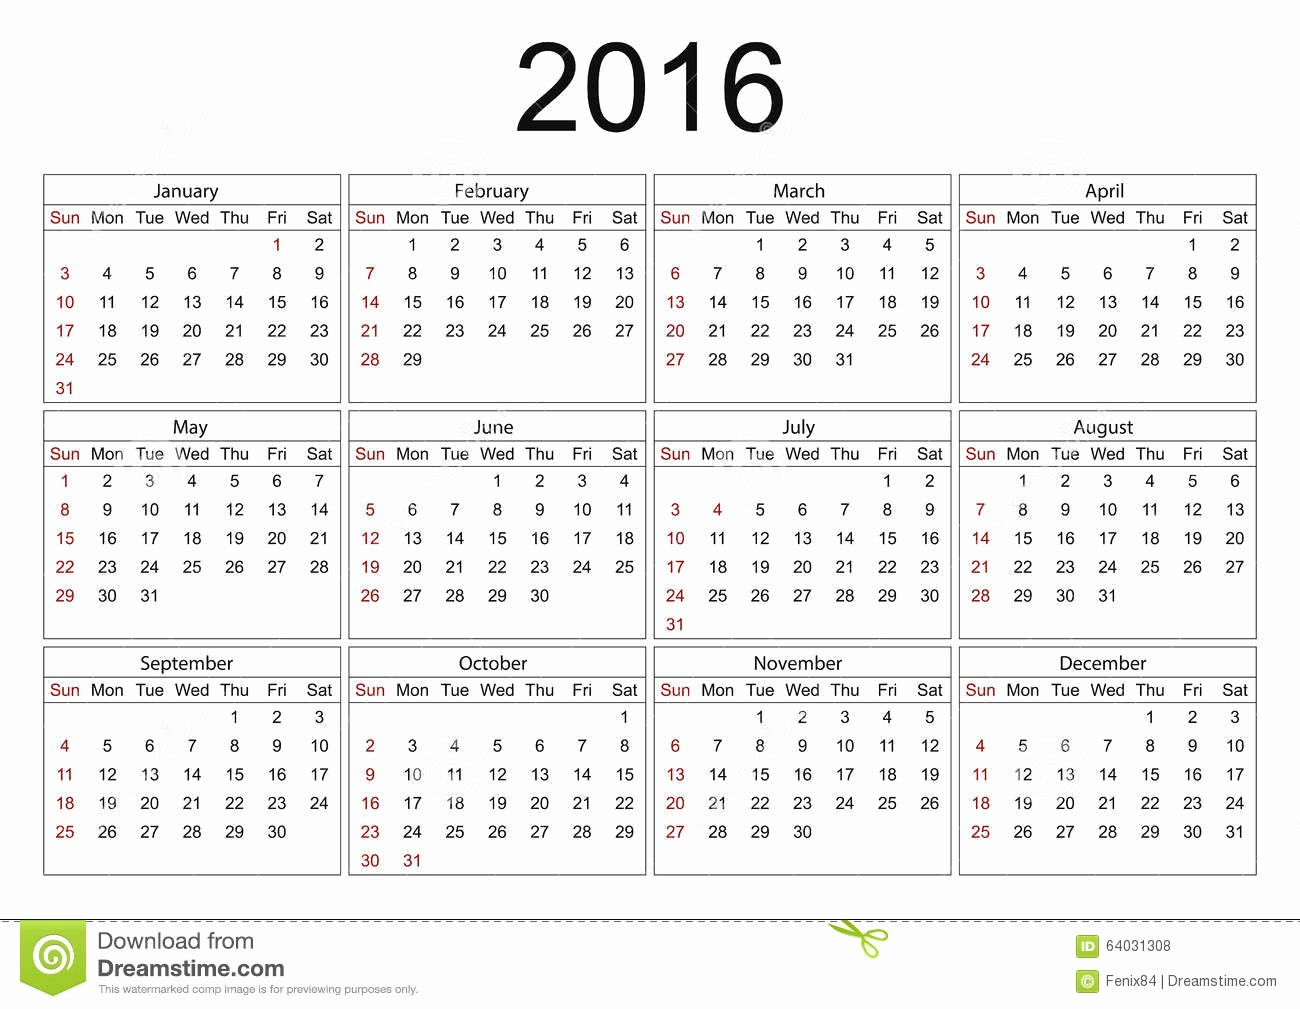 Days Of the Week Horizontal Beautiful Calendar for 2016 White Background Stock Vector